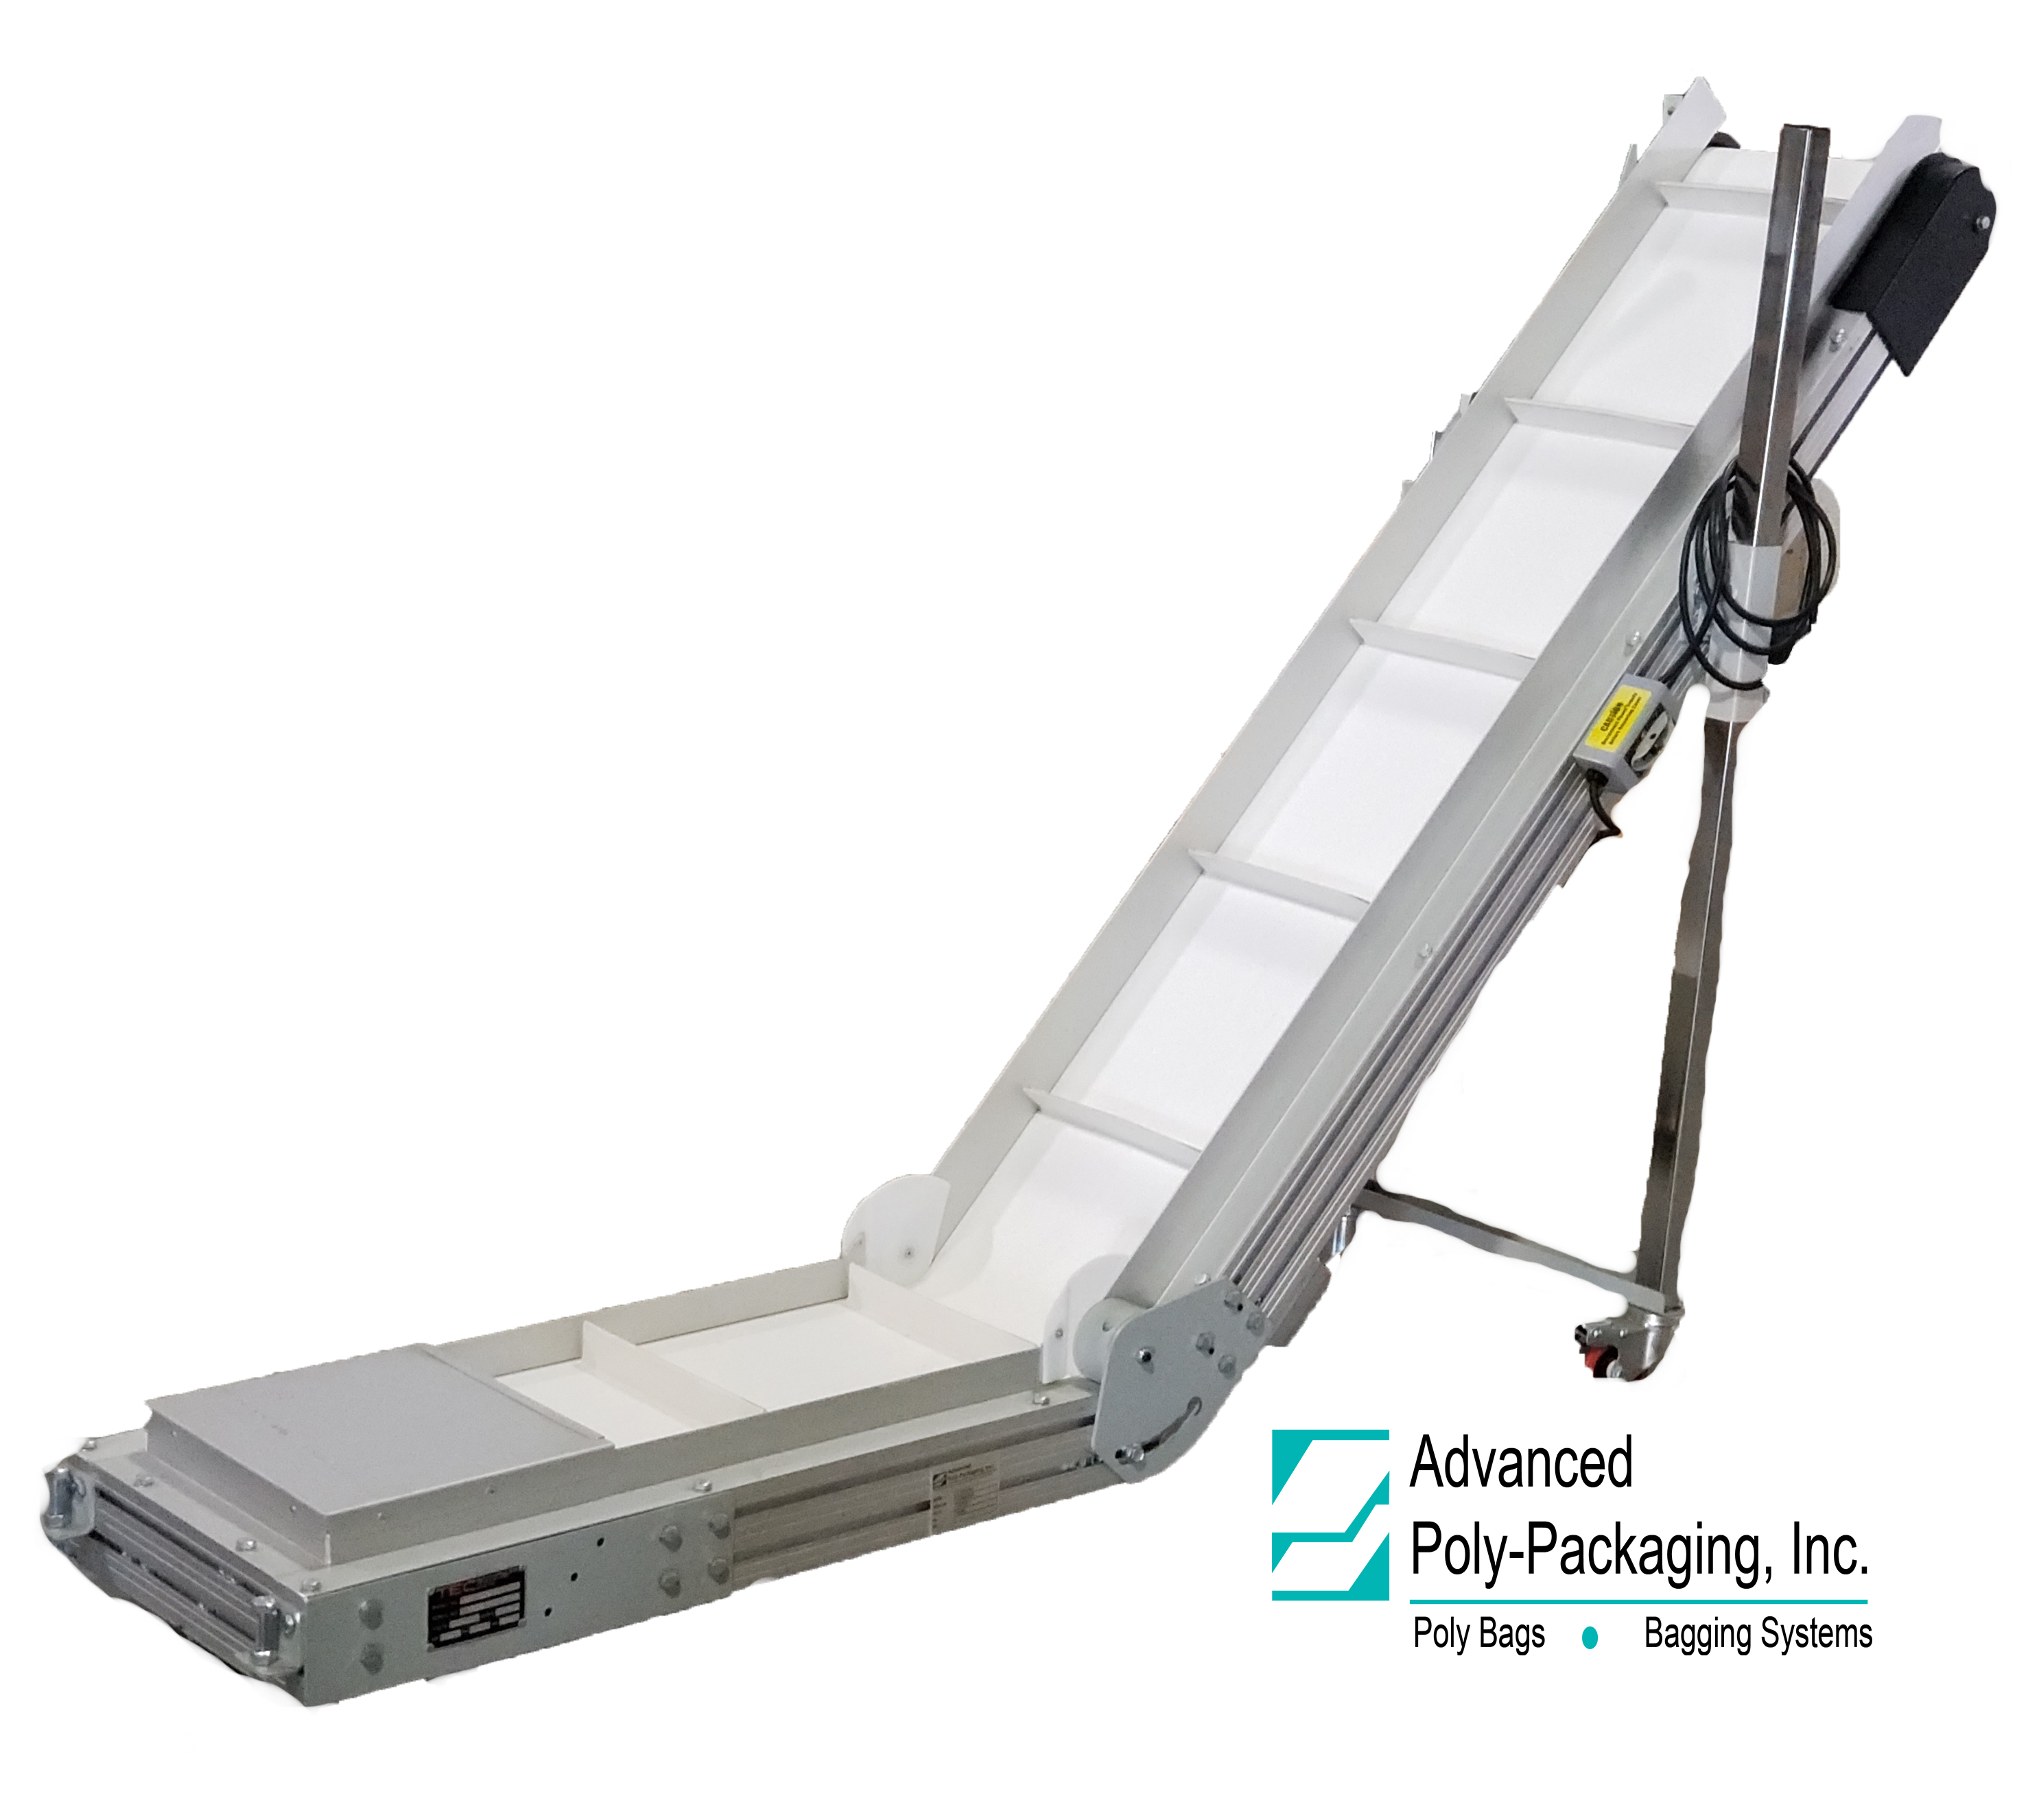 USED 2016 UF2000 Takeaway Conveyor